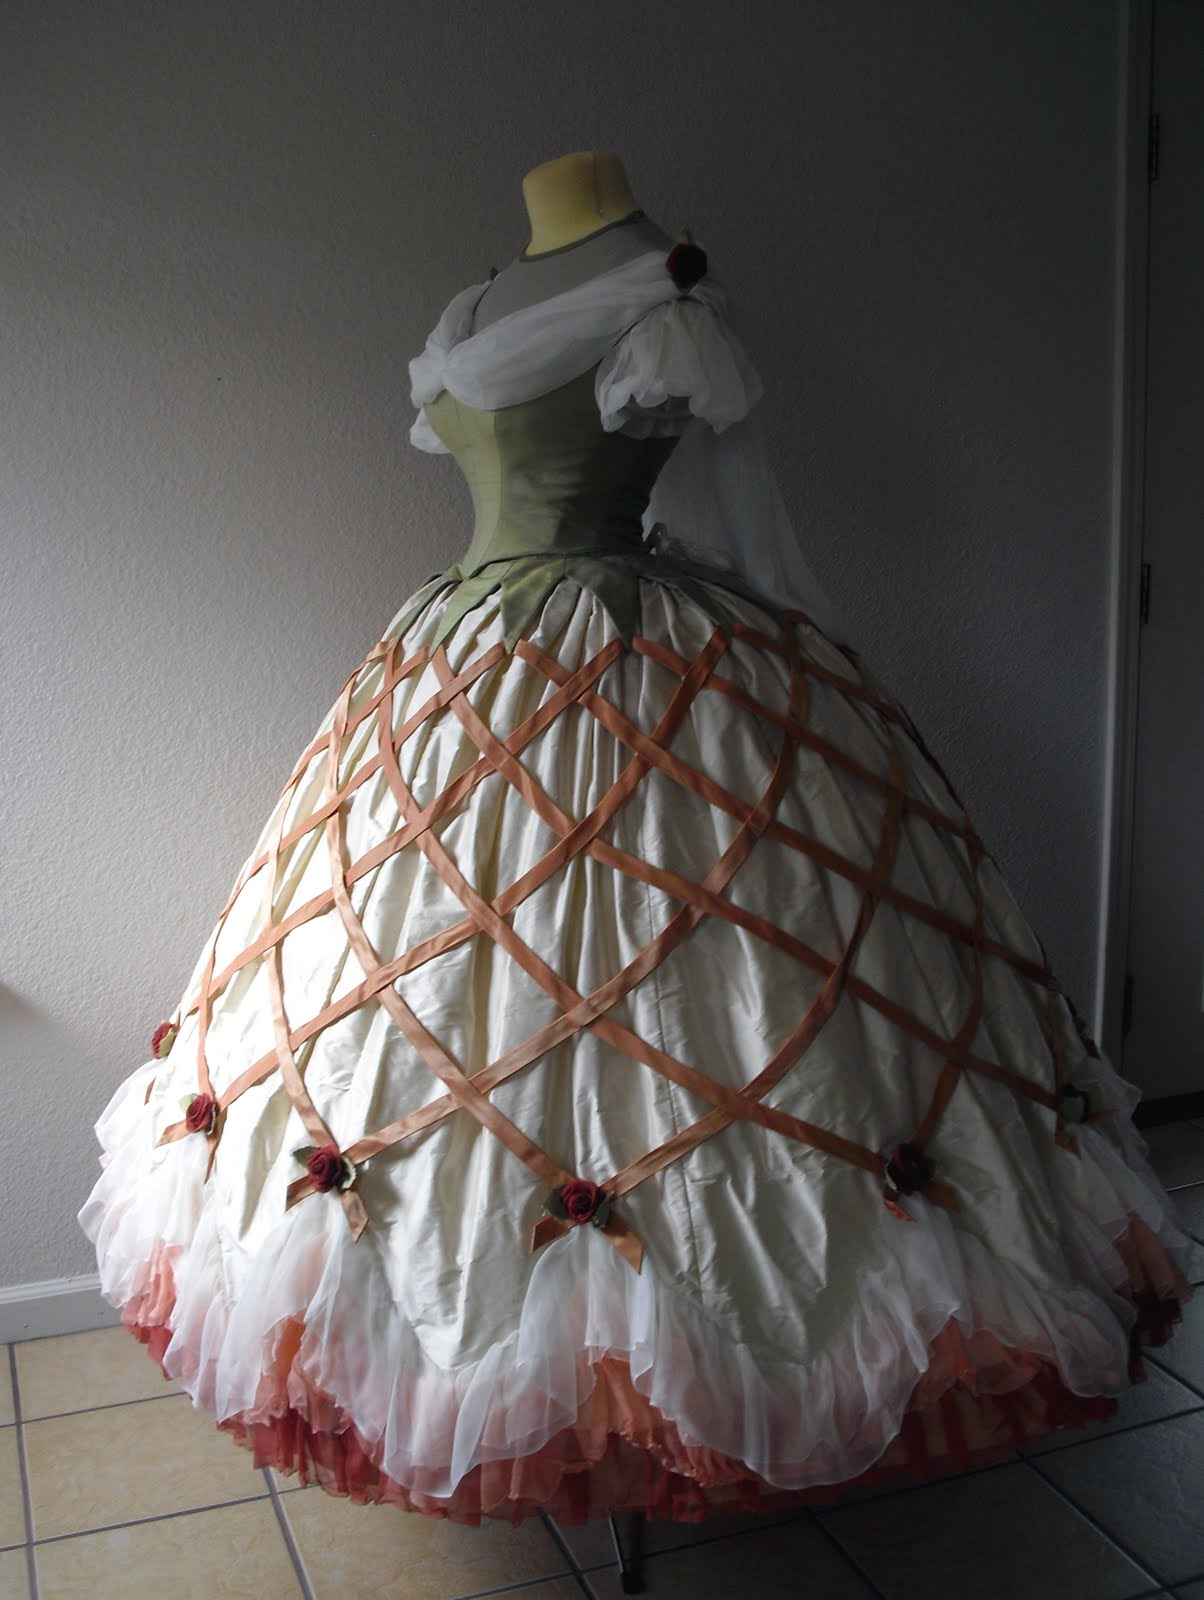 How To Draft A Custom Hoop Skirt Pattern With The Exact Shape You Want 7 Steps With Pictures Instructables Want to learn how to make a simple crinoline, otherwise known as a. draft a custom hoop skirt pattern